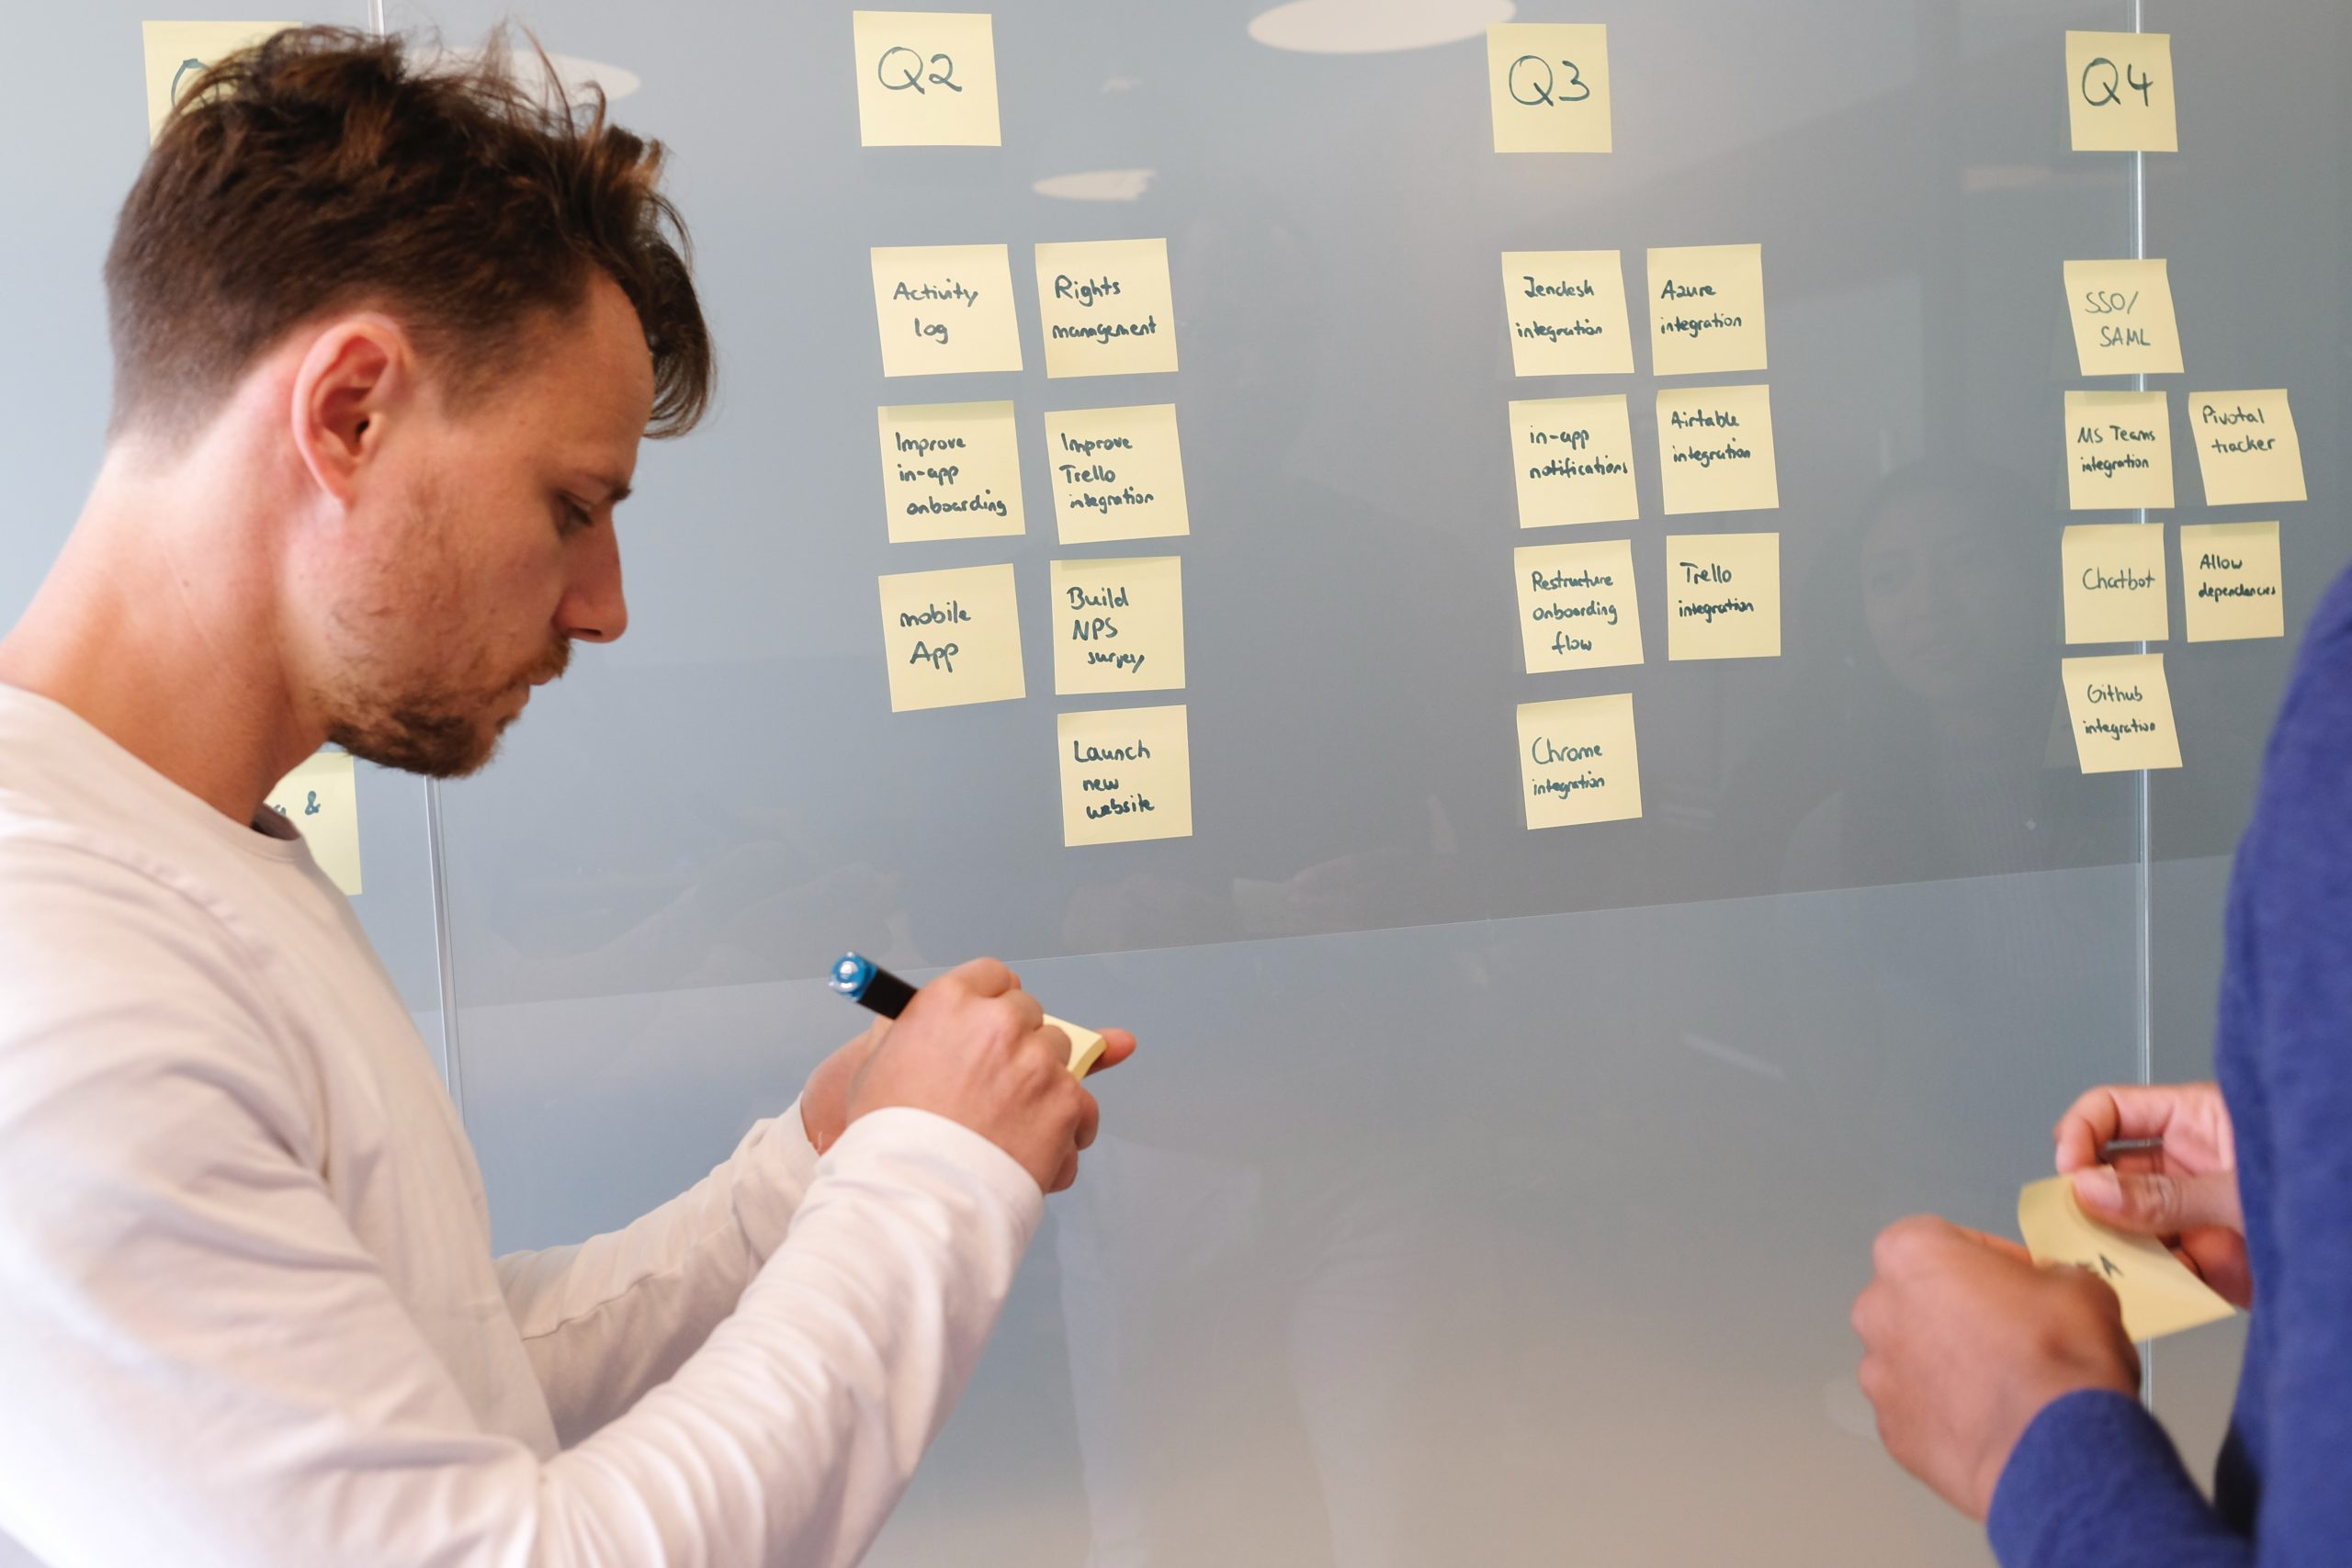 panning a marketing strategy on a whiteboard with stick notes by quarter